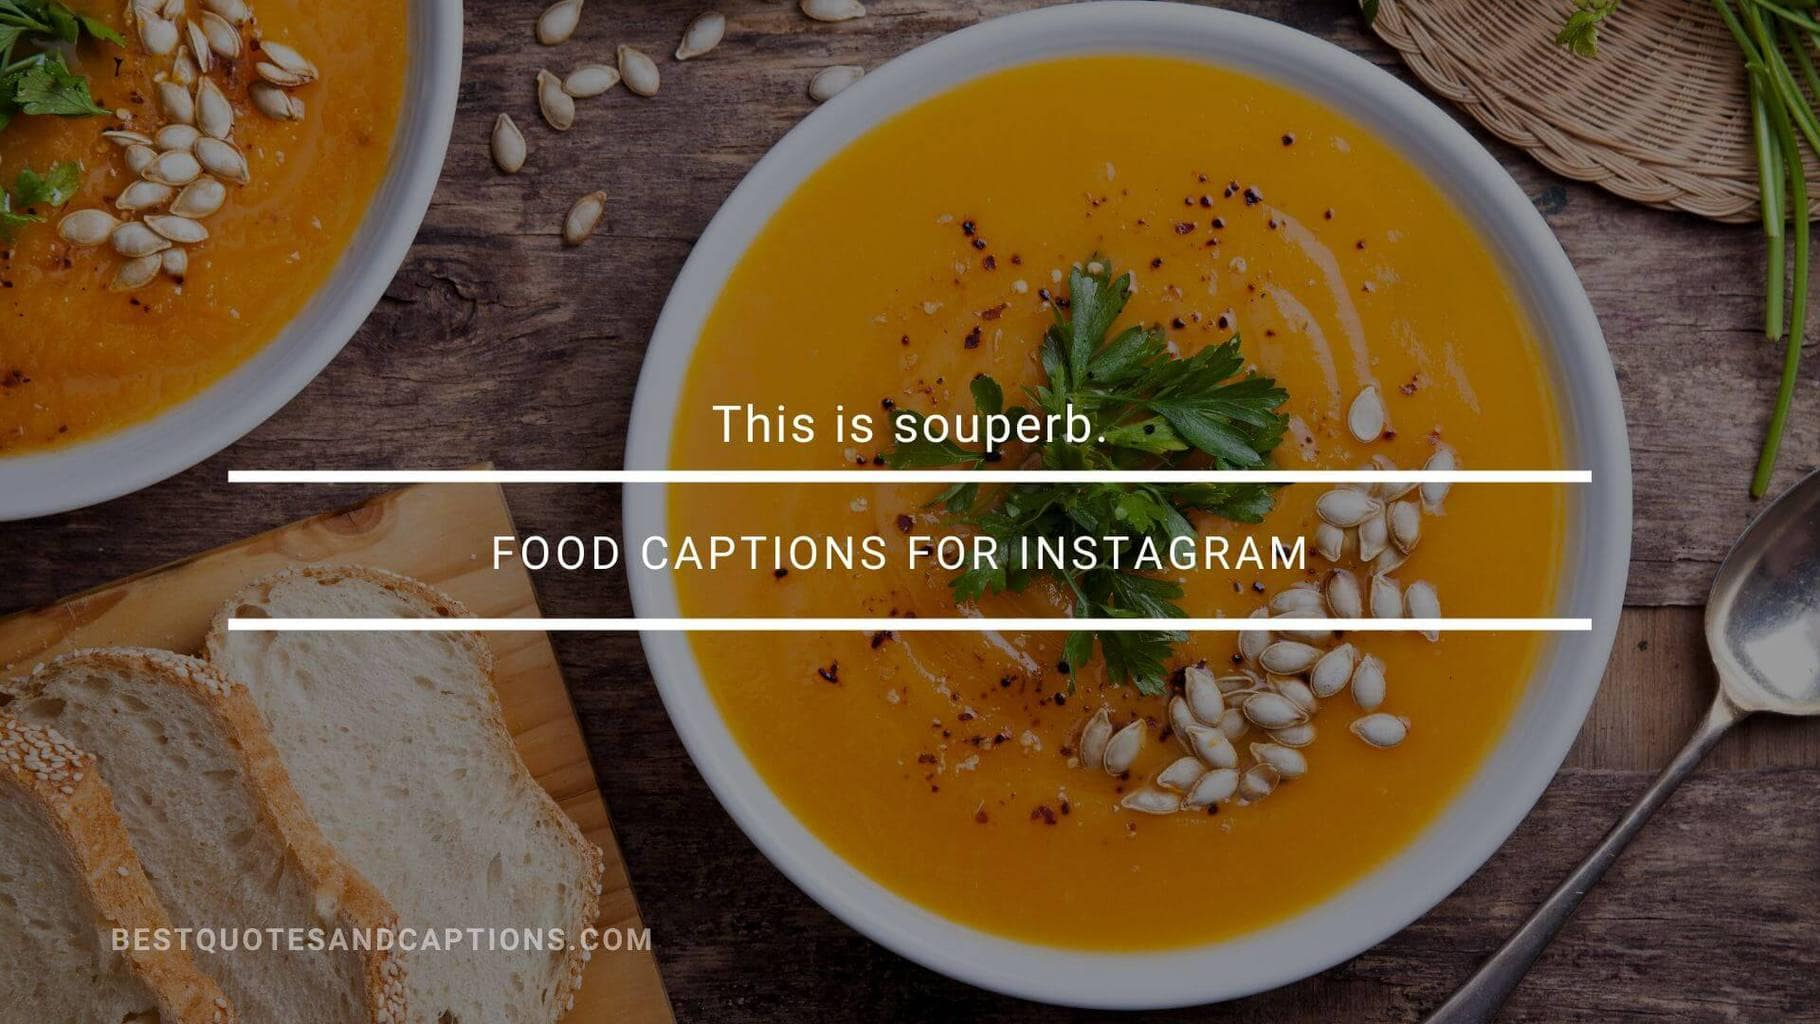 Soup captions for Instagram